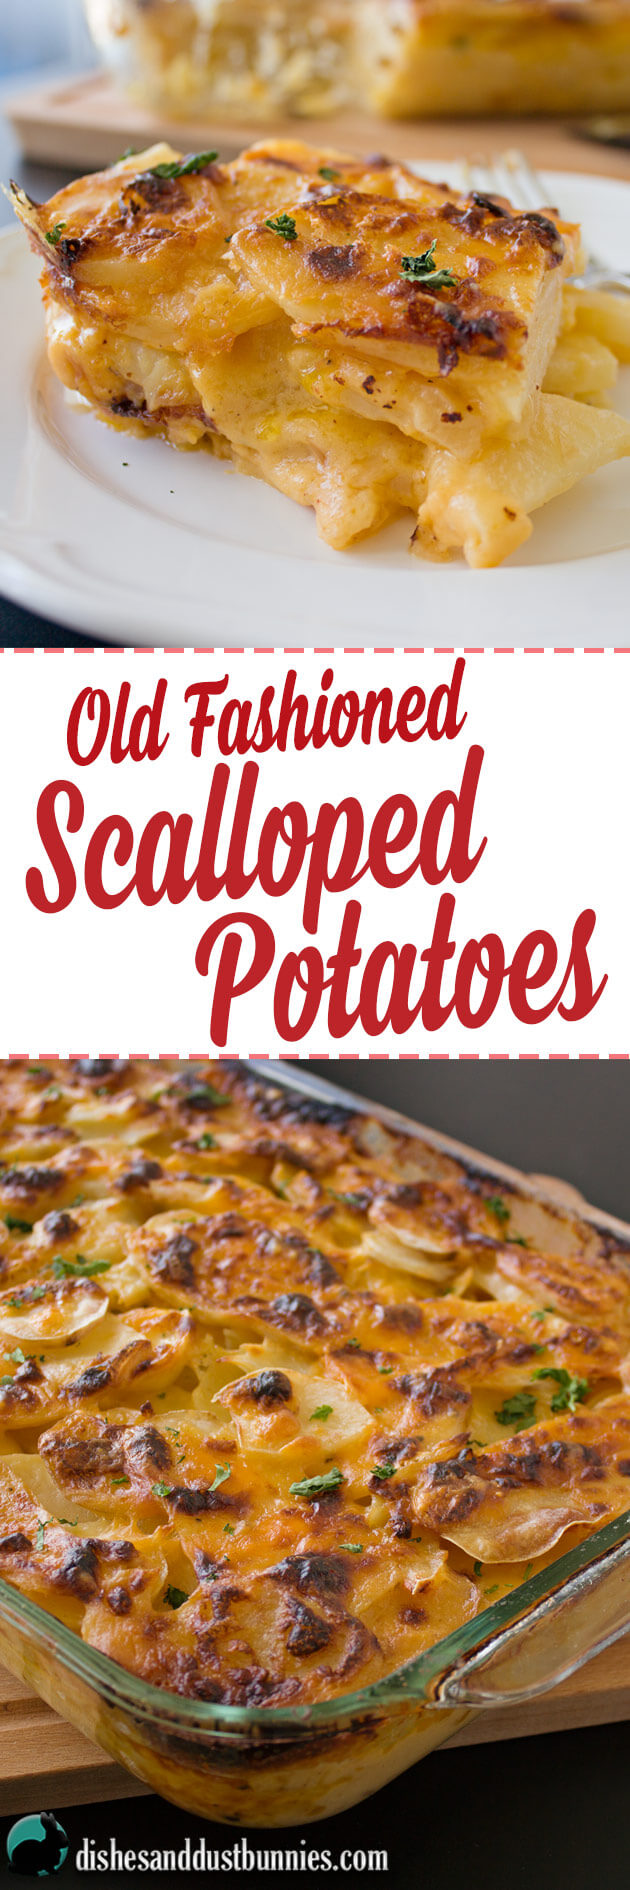 Old Fashioned Scalloped Potatoes from dishesanddustbunnies.com